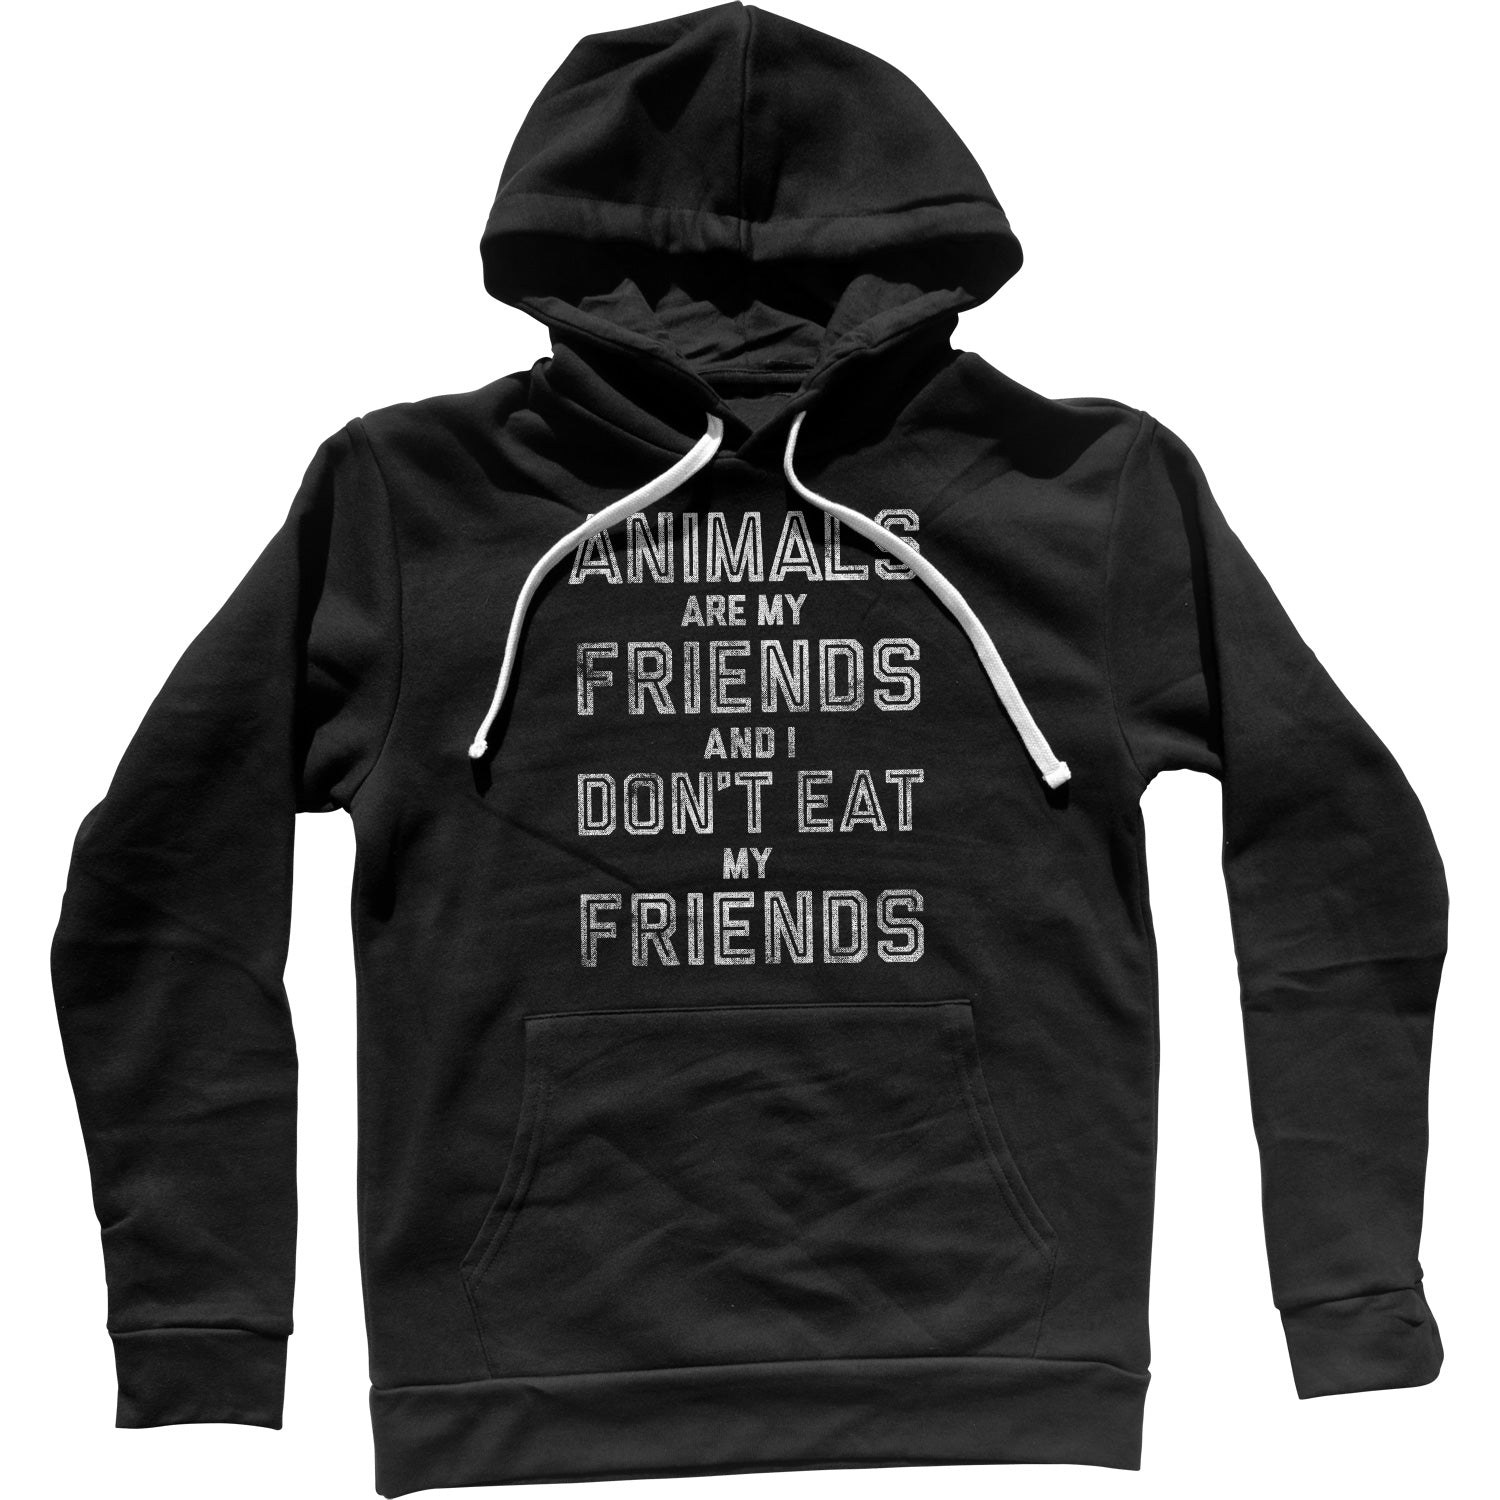 620a633d Animals Are My Friends And I Don't Eat My Friends Vegetarian Quote Uni –  Boredwalk